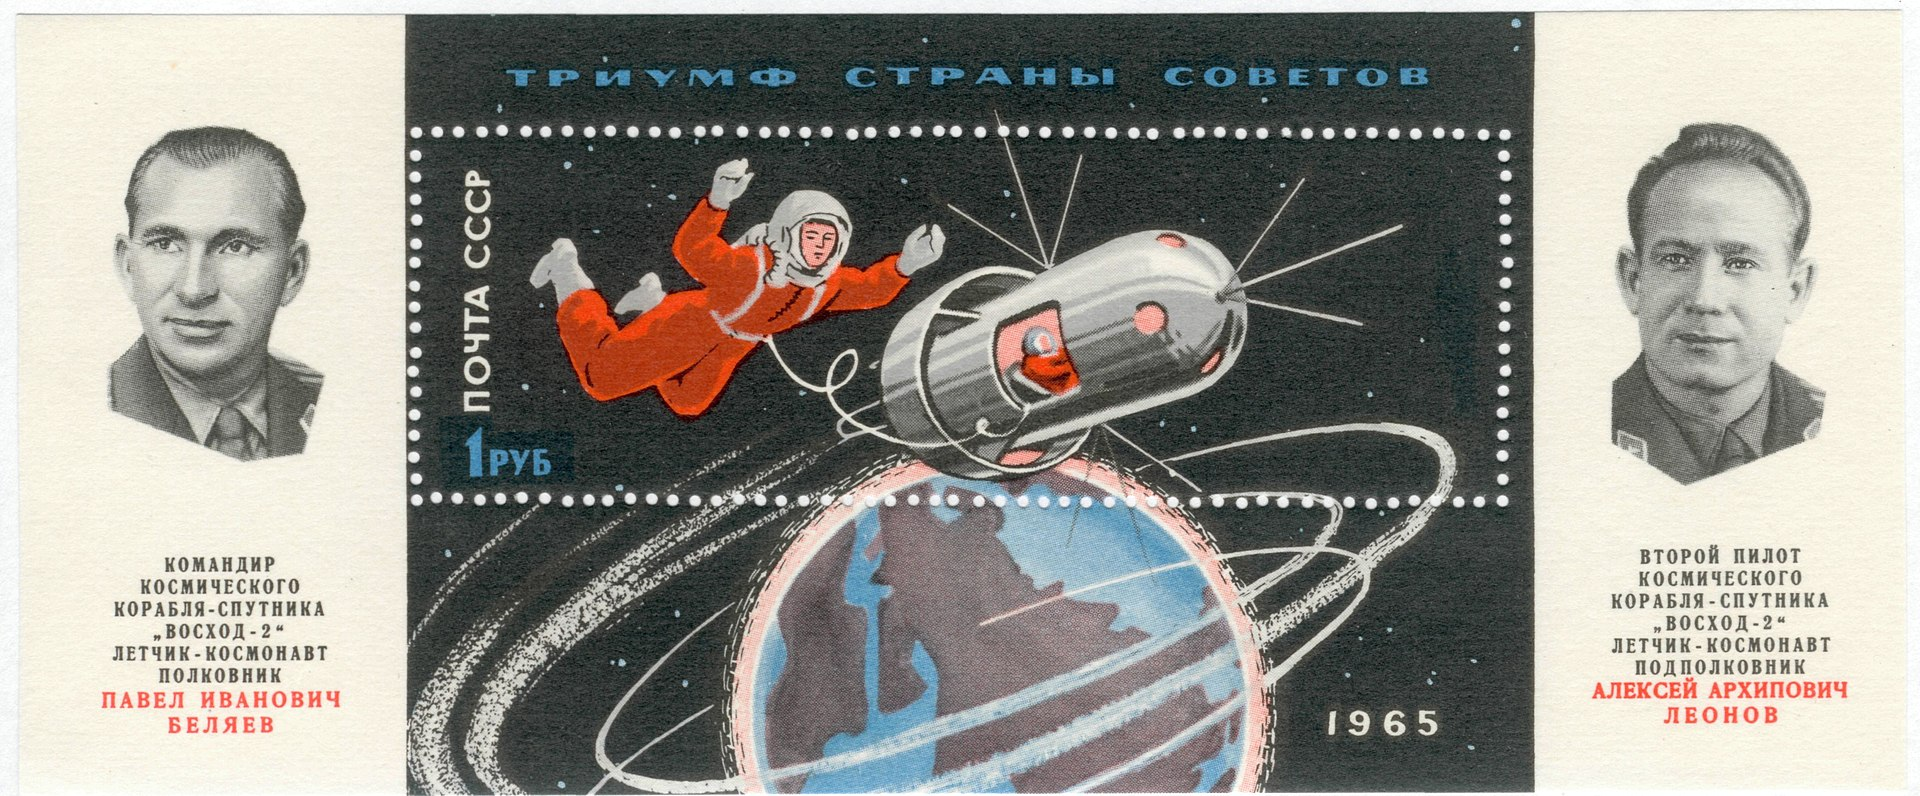 https://upload.wikimedia.org/wikipedia/commons/thumb/6/60/USSR_miniature_sheet_of_1965%2C_The_Triumph_of_the_Soviet_Union._Voskhod-2_spacecraft.jpg/1920px-USSR_miniature_sheet_of_1965%2C_The_Triumph_of_the_Soviet_Union._Voskhod-2_spacecraft.jpg